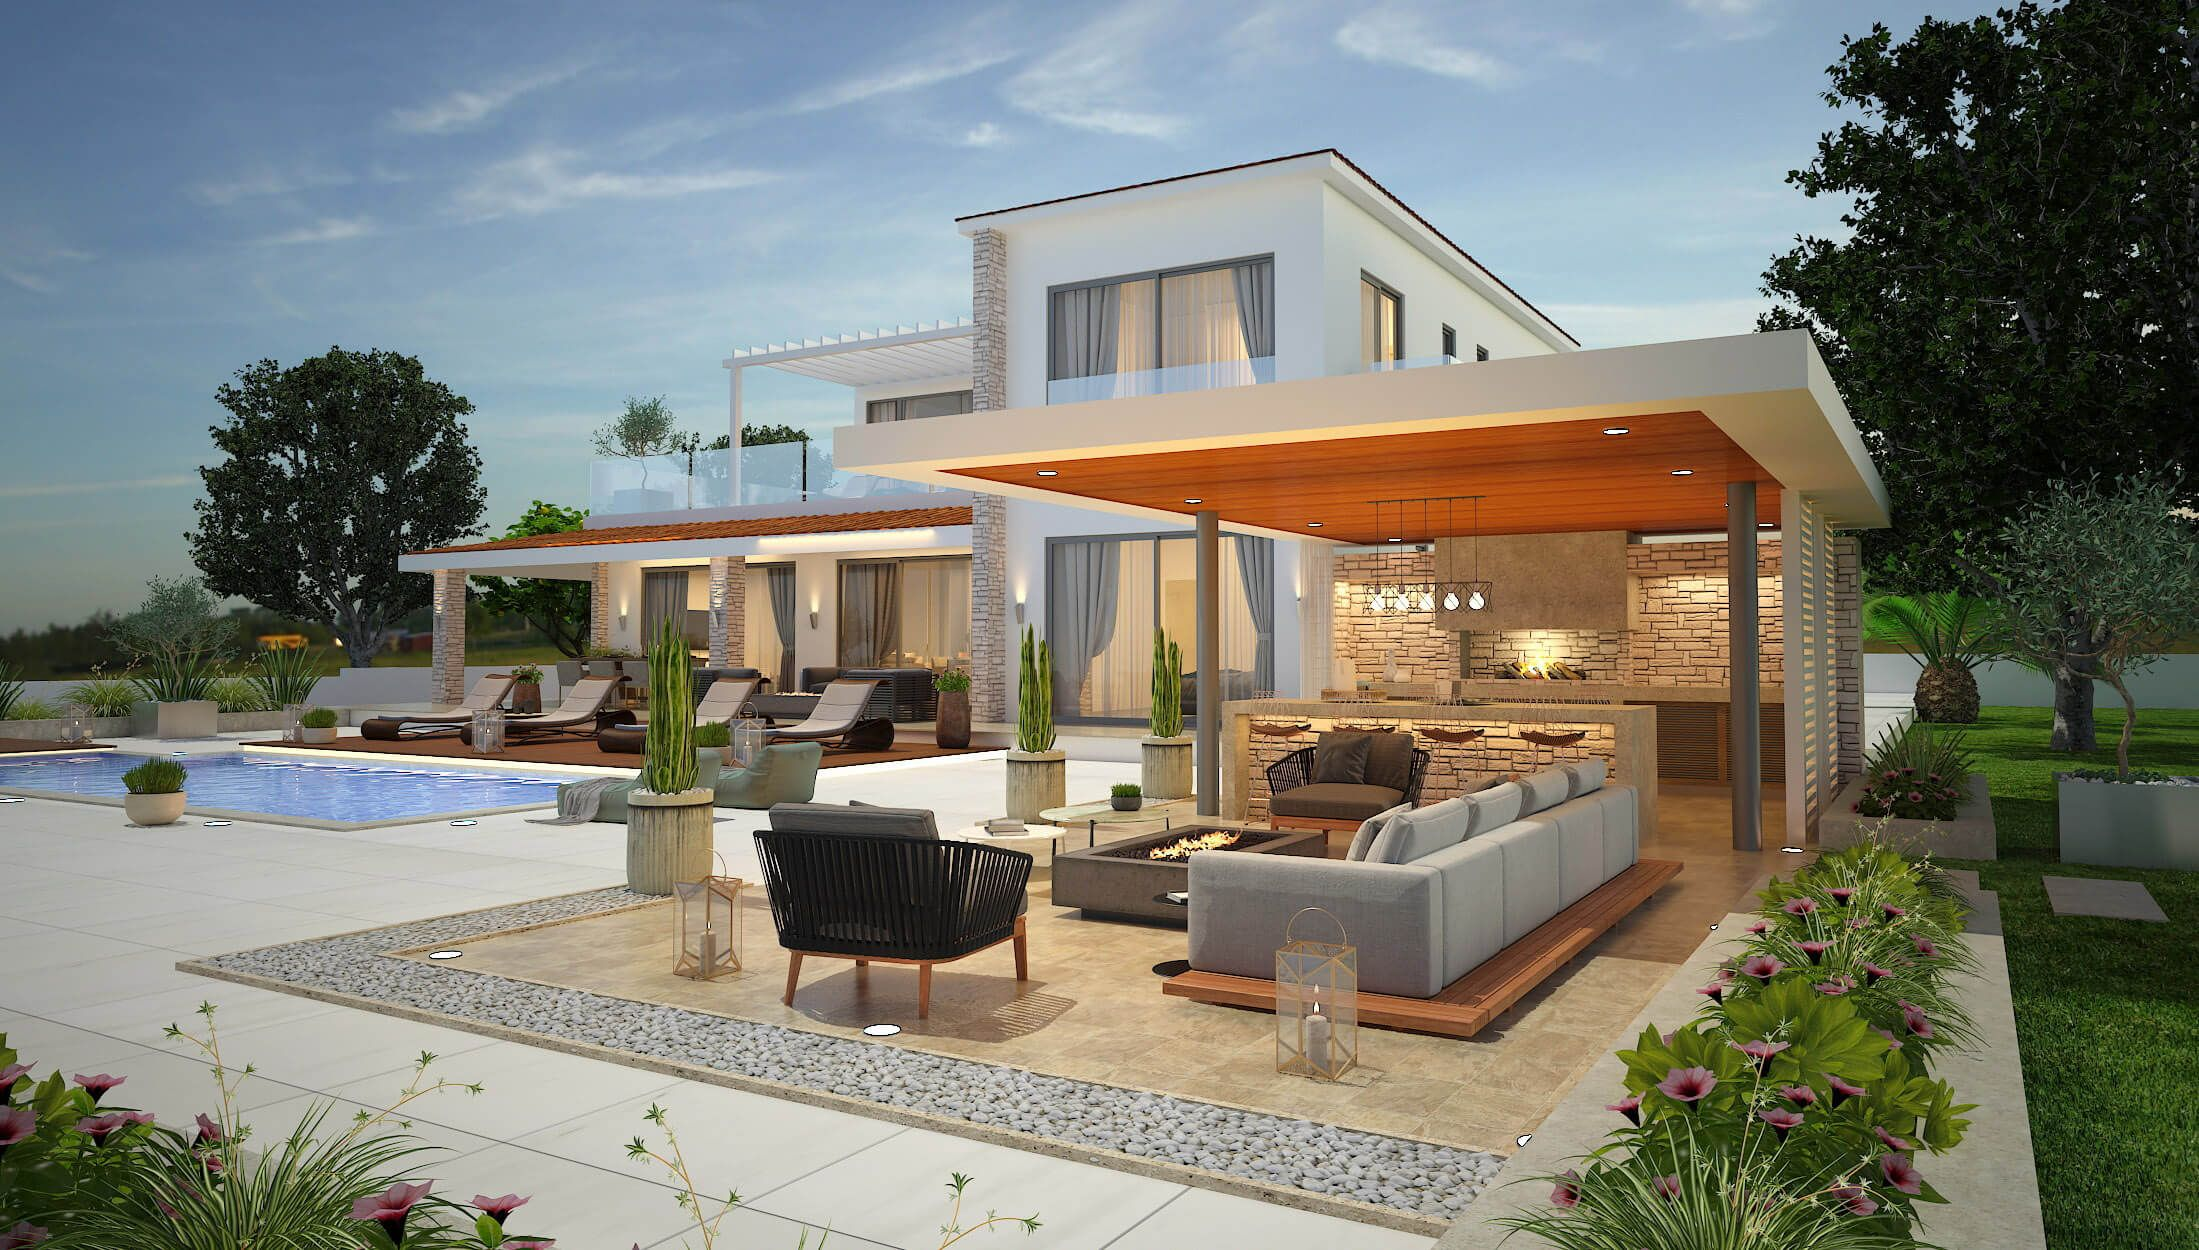 Architecture Services In Cyprus Design Your Dream House Architecture Residential Design